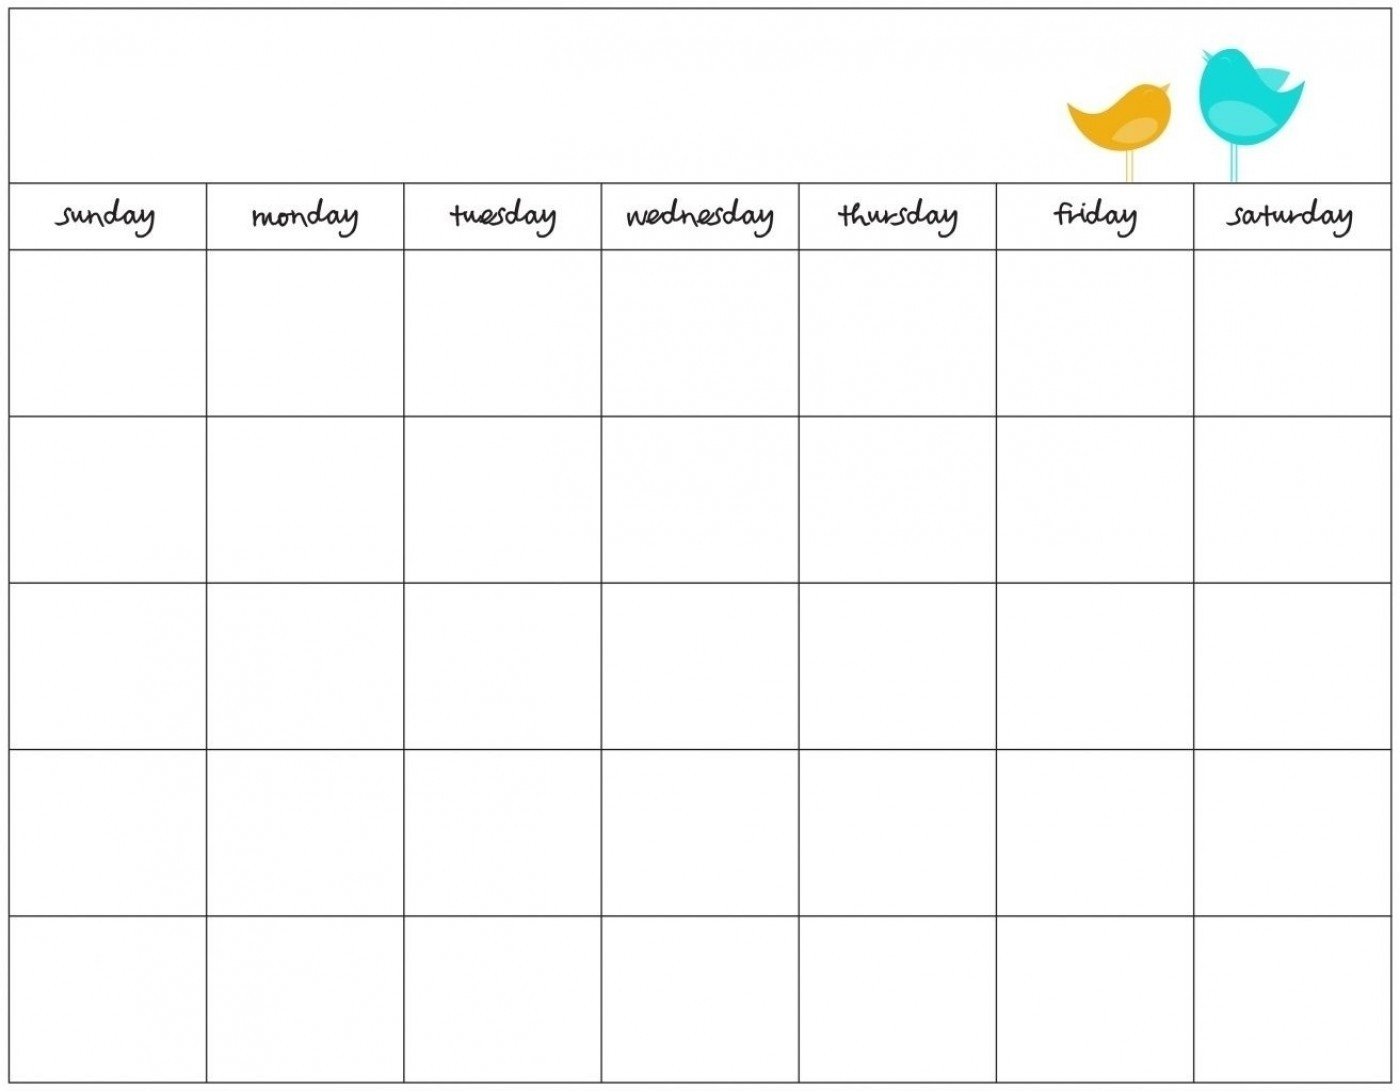 7 Day Weekly Schedule Template - Wpa.wpart.co